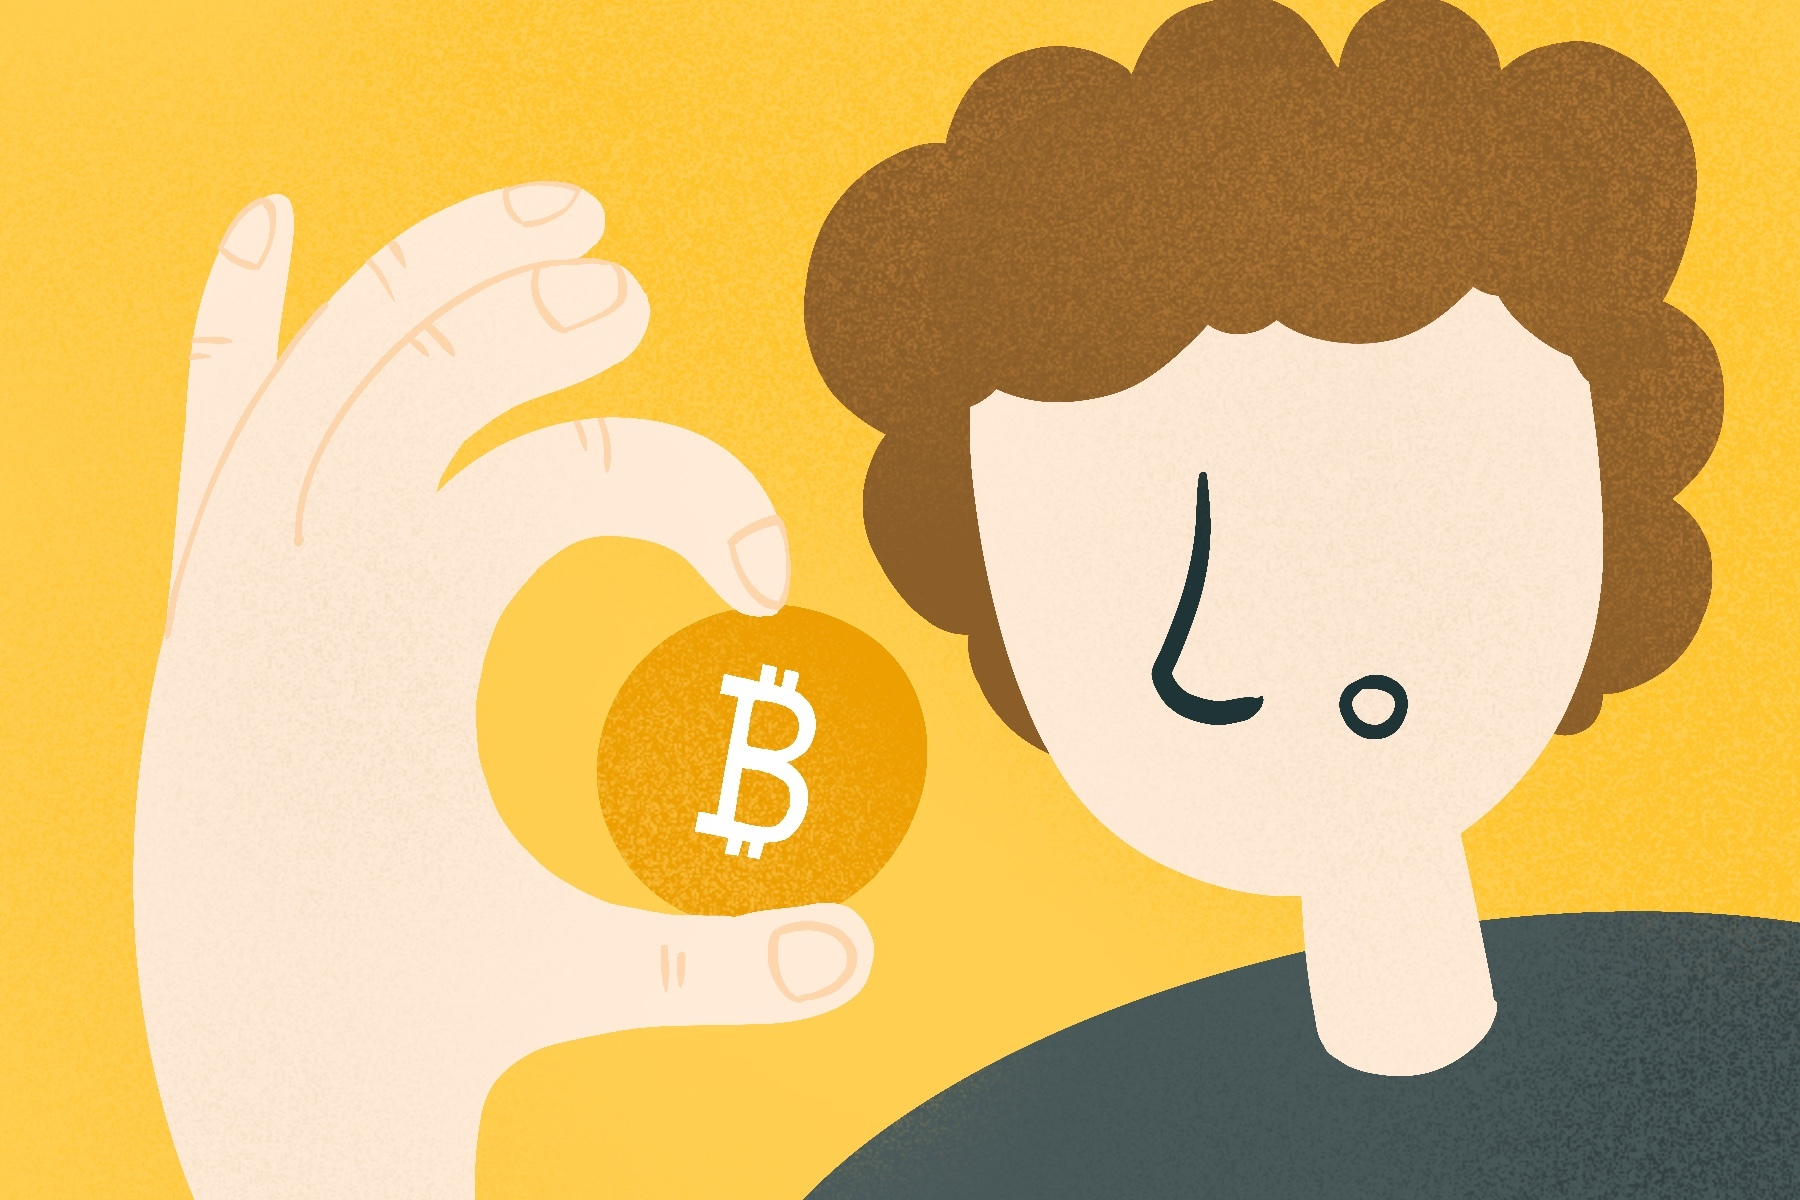 An illustration of a person holding a Bitcoin for an article about Bitcoin and NFTs. (Illustration by Sonja Vasiljeva, San Jose State University)